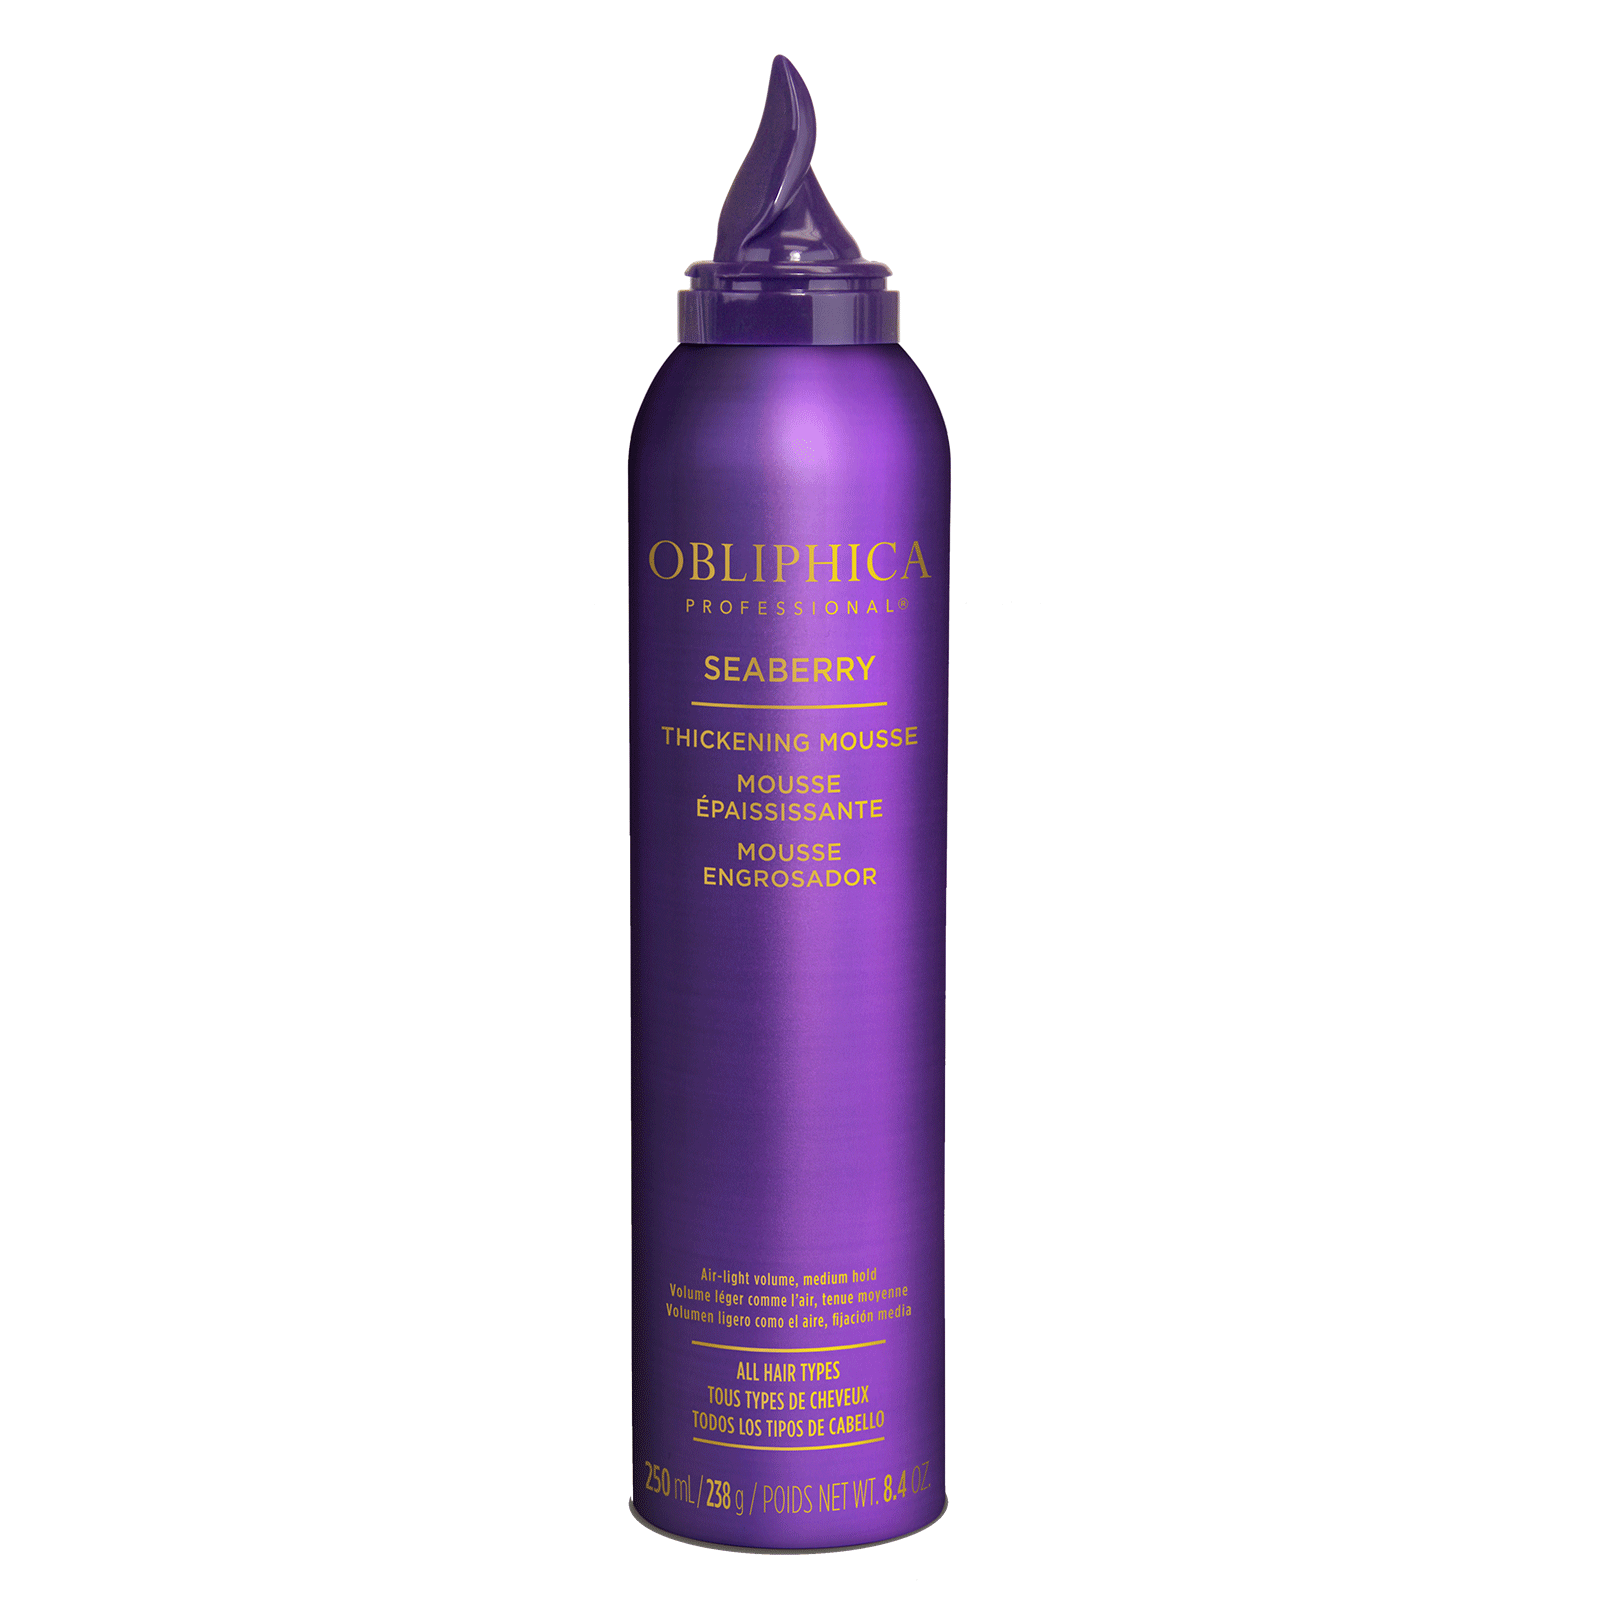 Obliphica Seaberry Thickening Mousse 8.4oz image 3